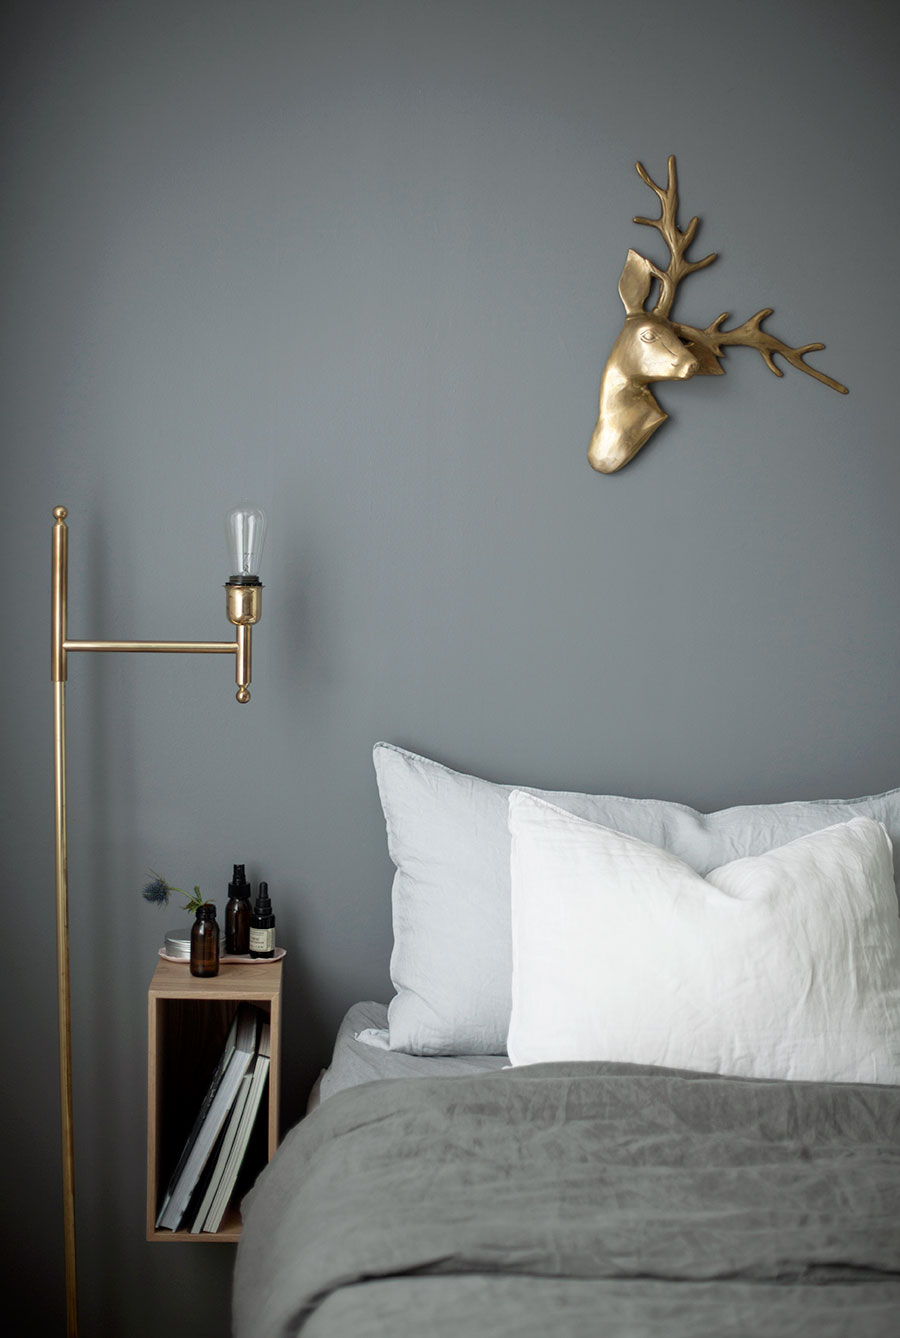 Warm shades of gray in a dreamy apartment - Daily Dream Decor